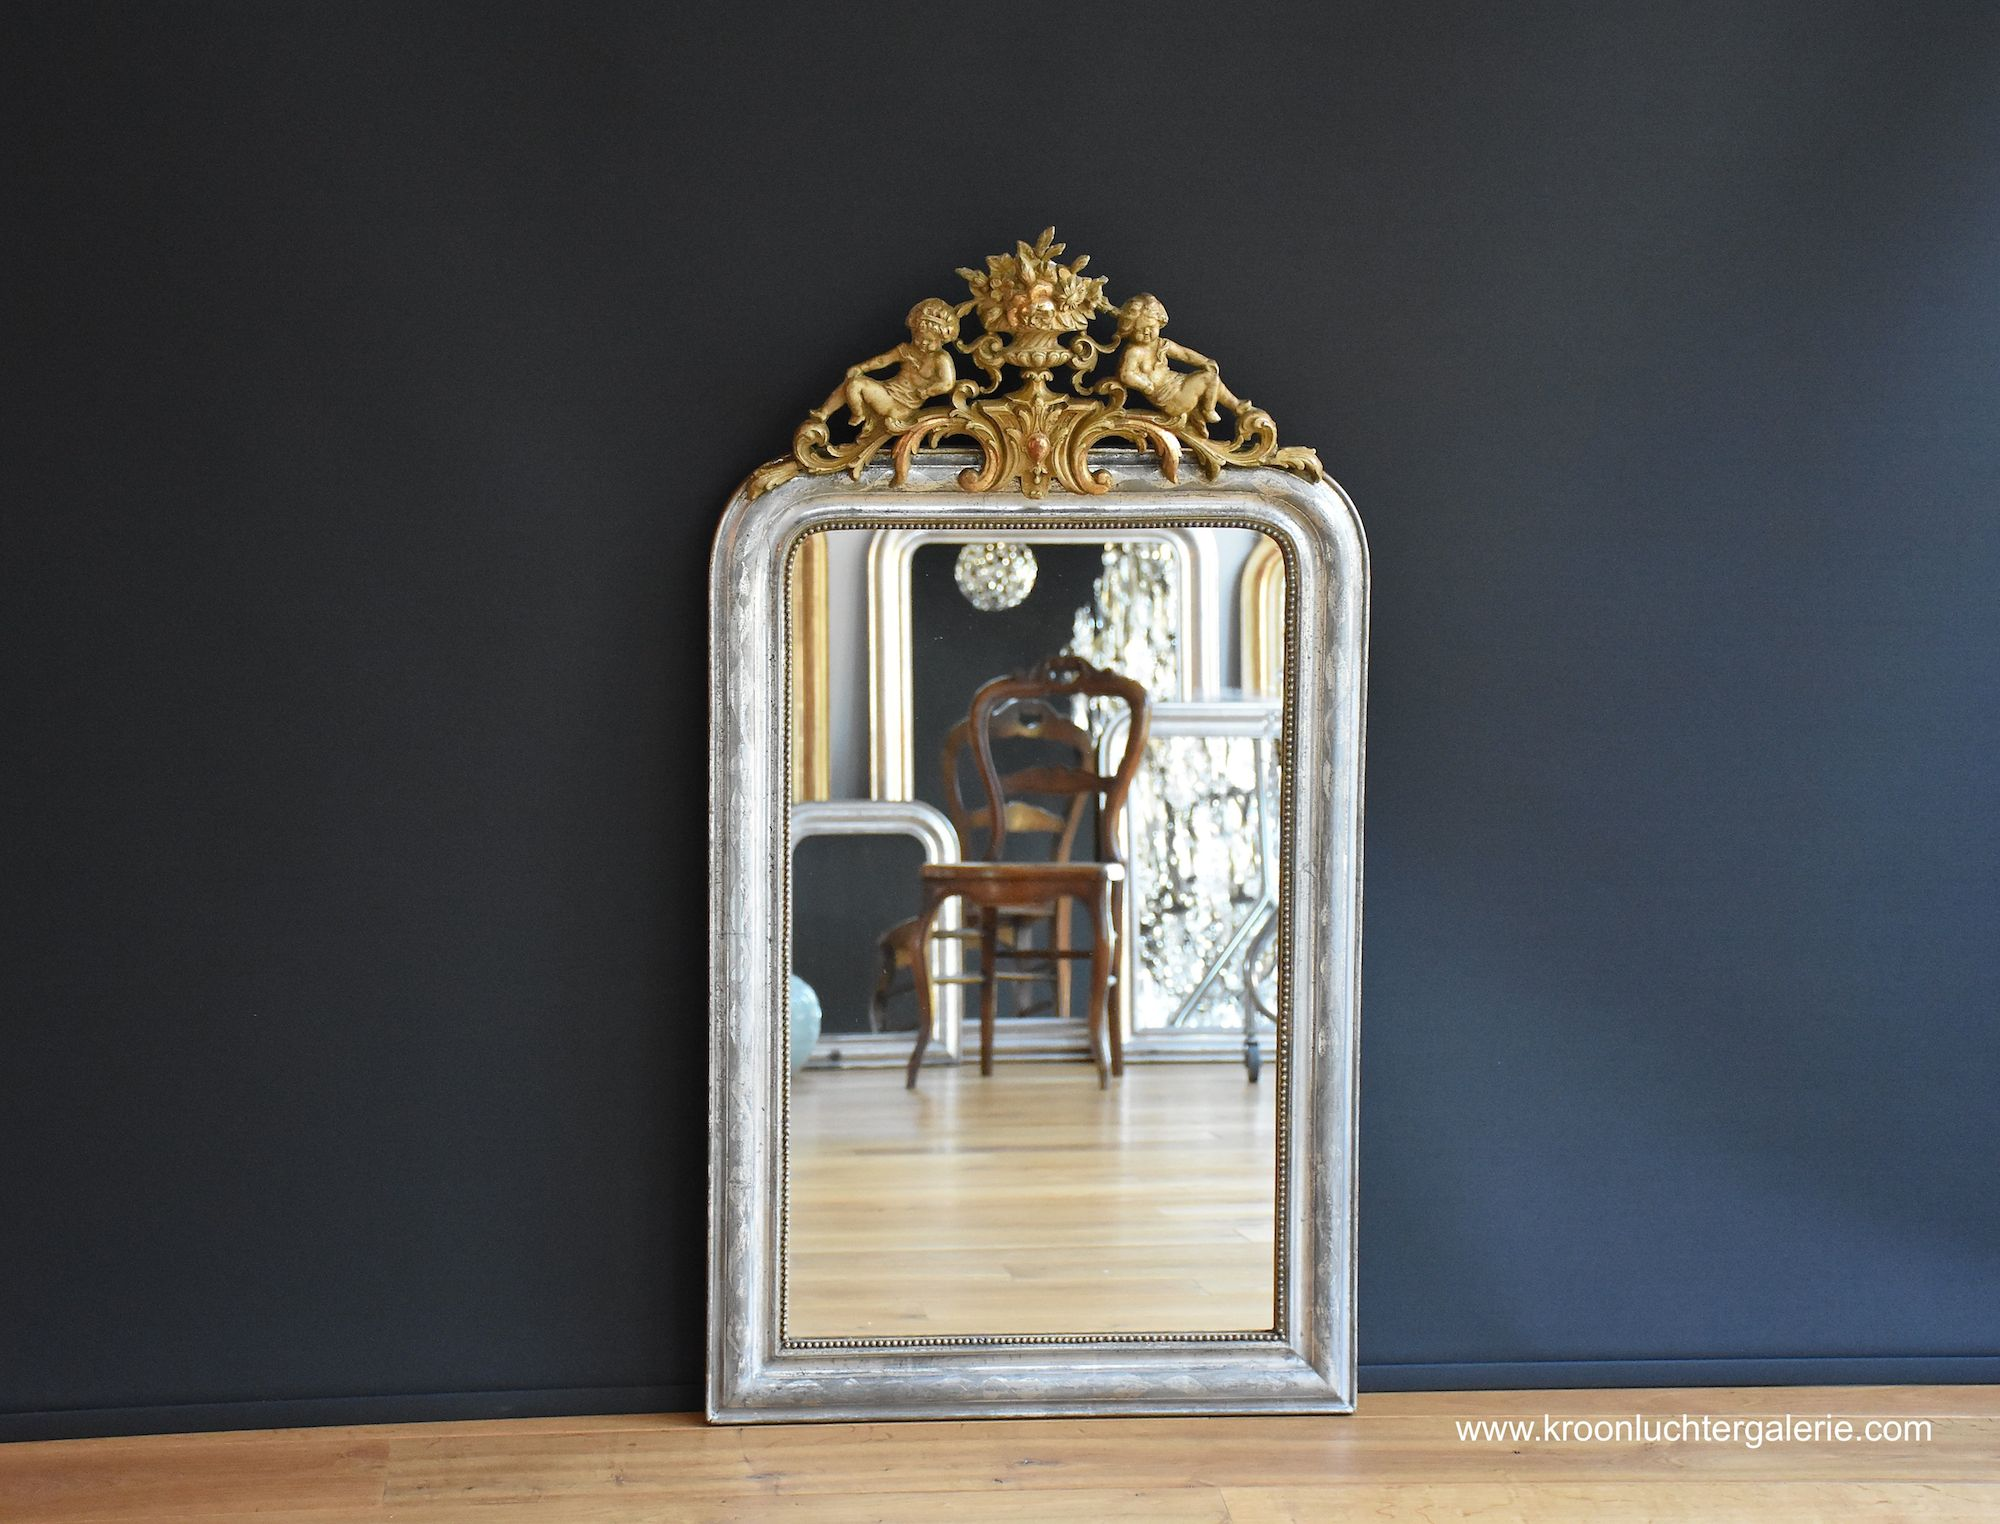 Silvered French mirror with a crest